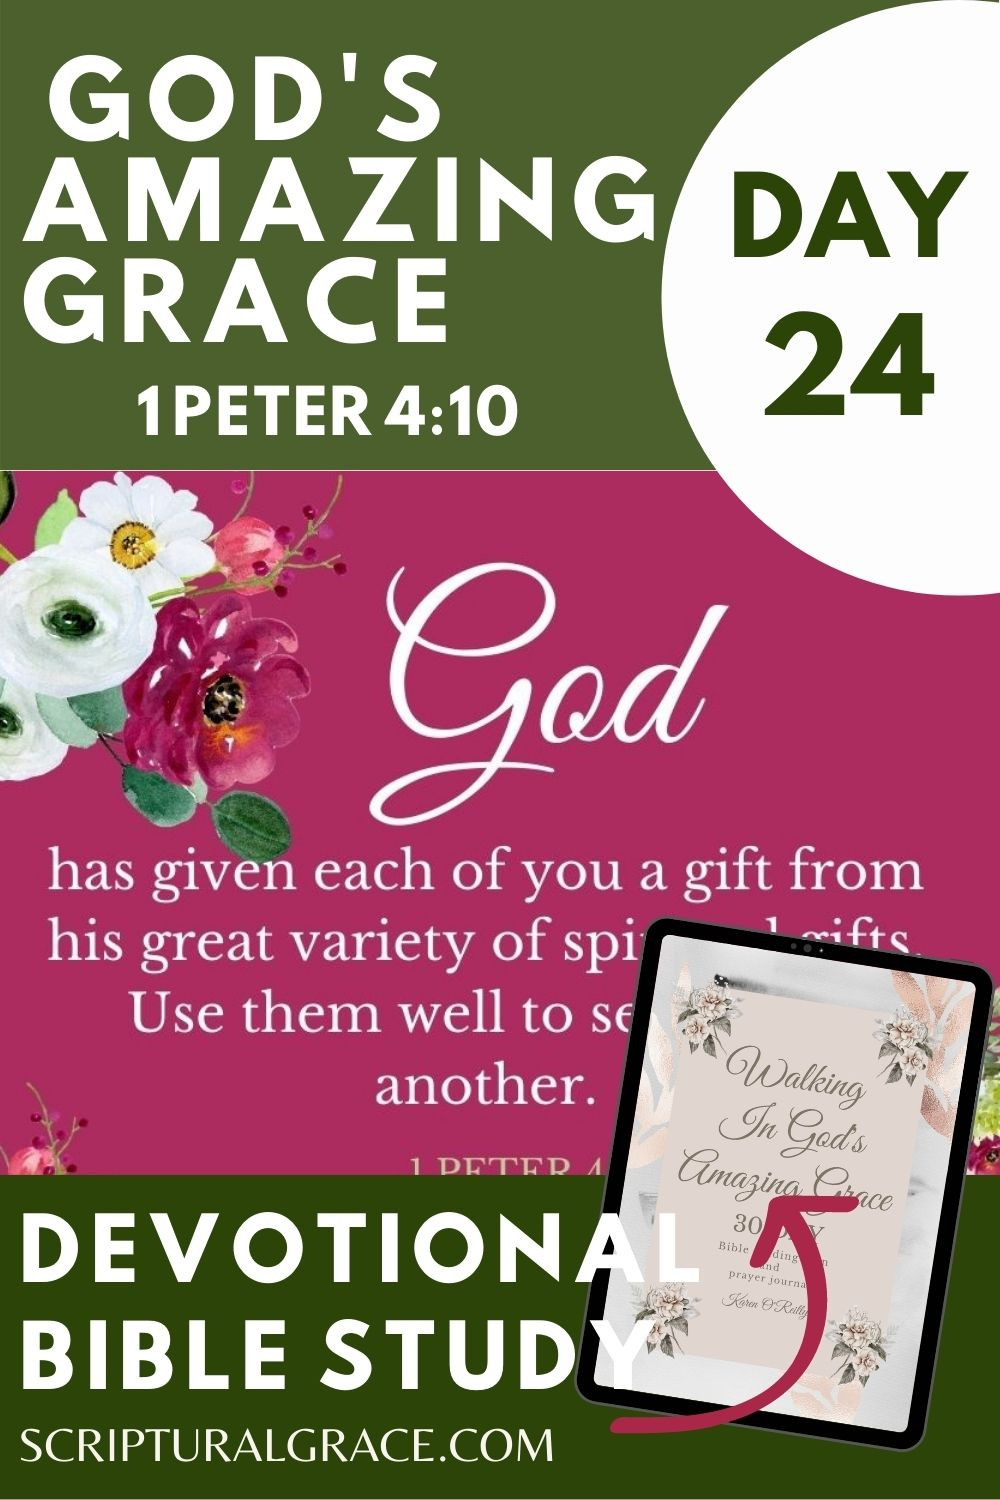 Use Your Gifts 1 Peter 4 10 devotional bible study and free prayer journal